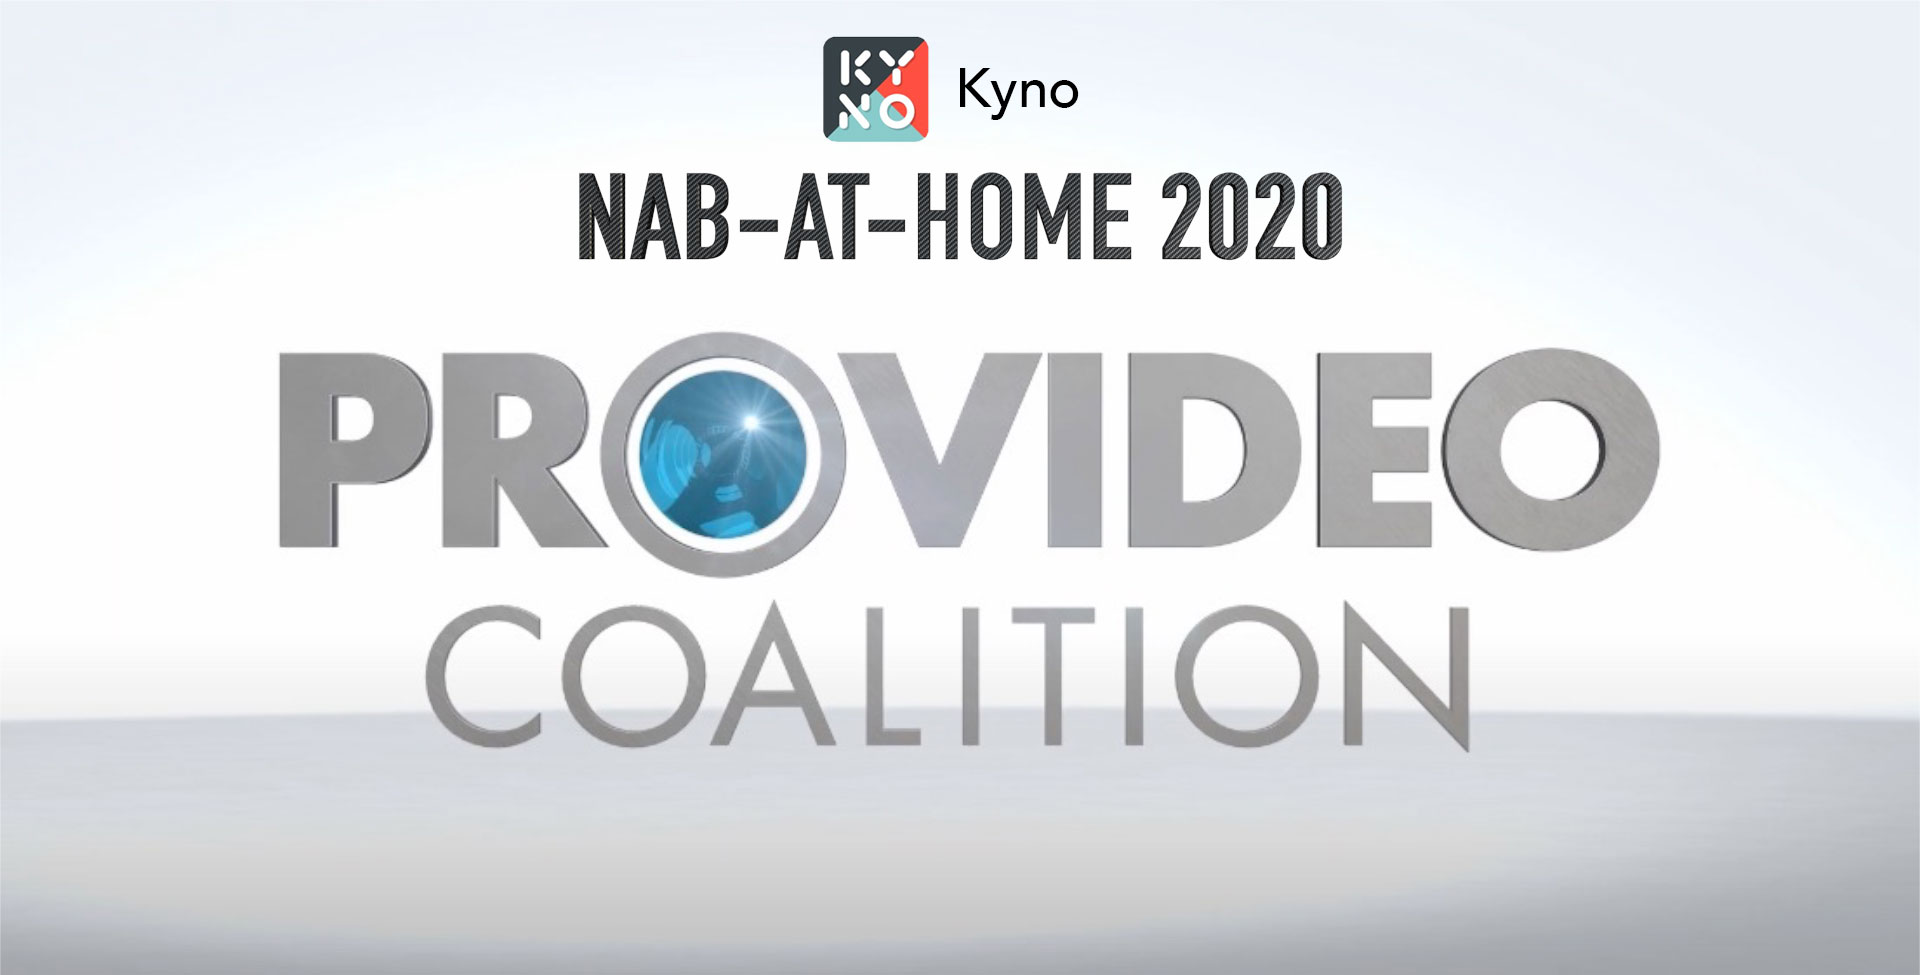 nab-at-home-2020-kyno